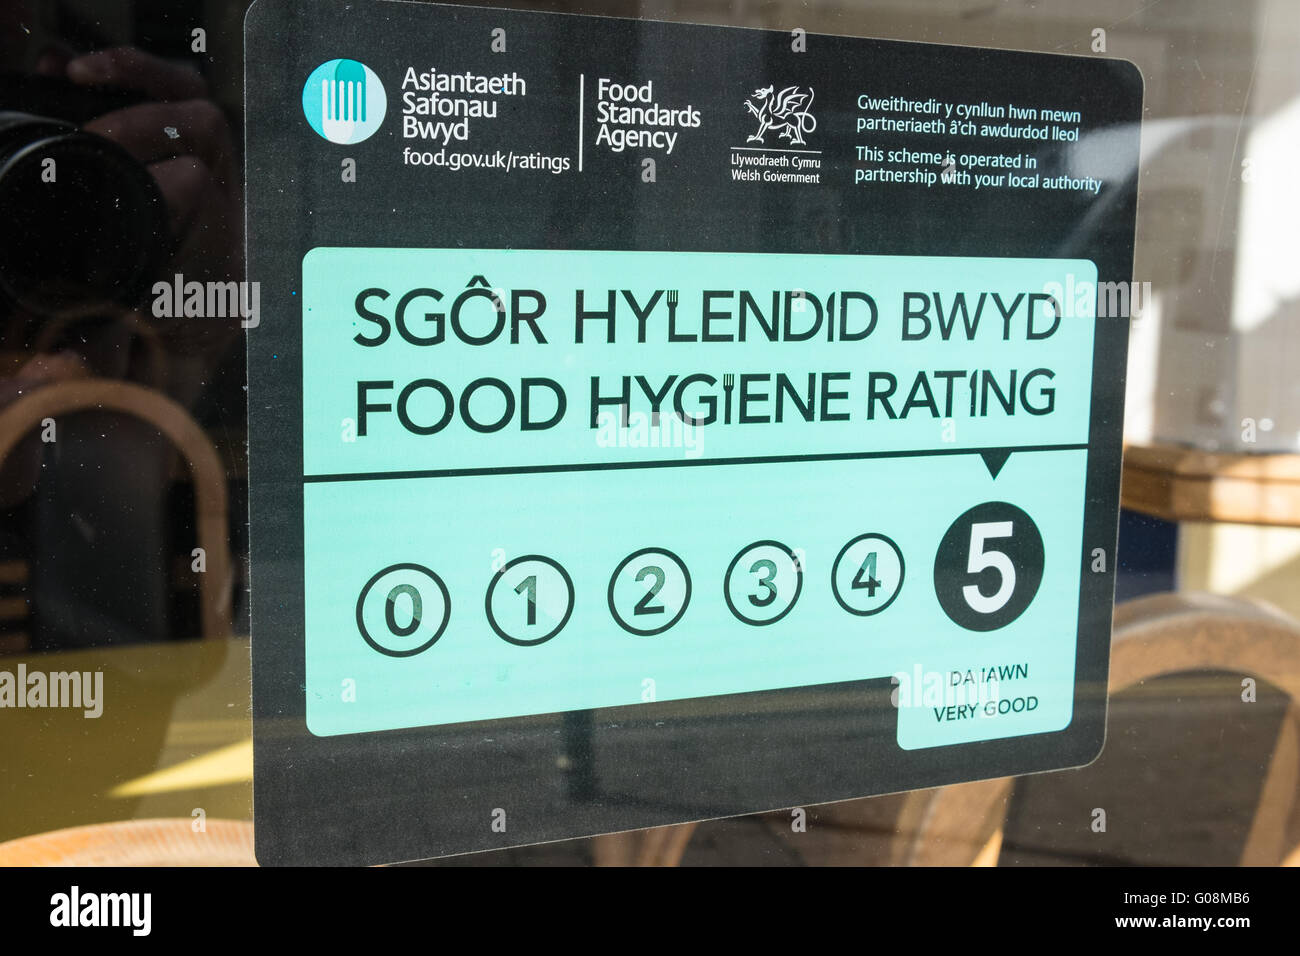 Welsh Food Hygiene Stock Photos & Welsh Food Hygiene Stock Images ...